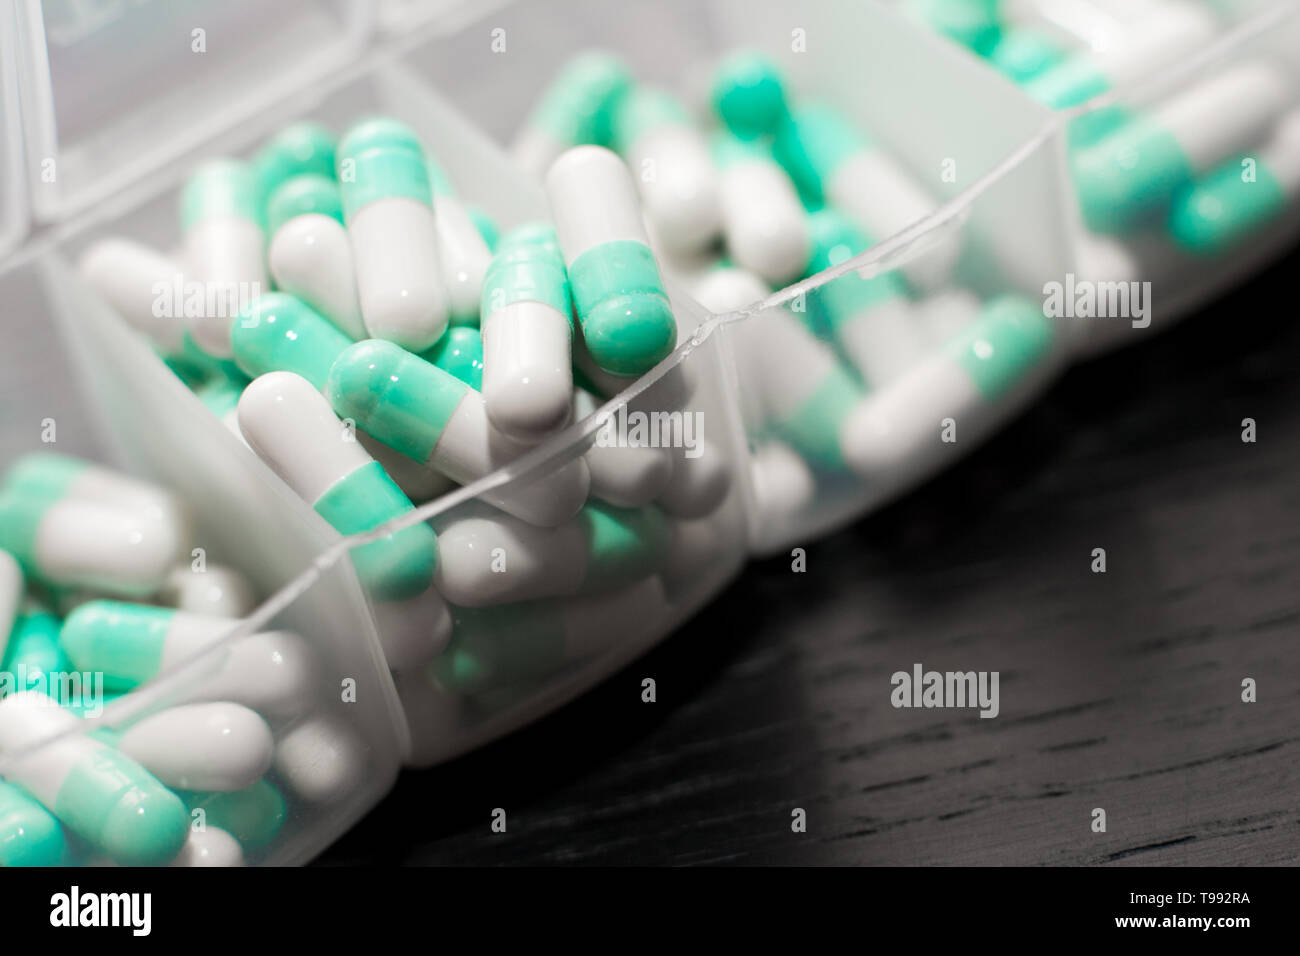 Extreme close up of seven day pill box with pills. Blu pill-box with tuesday pills visible. Open pill box on black background - Stock Image